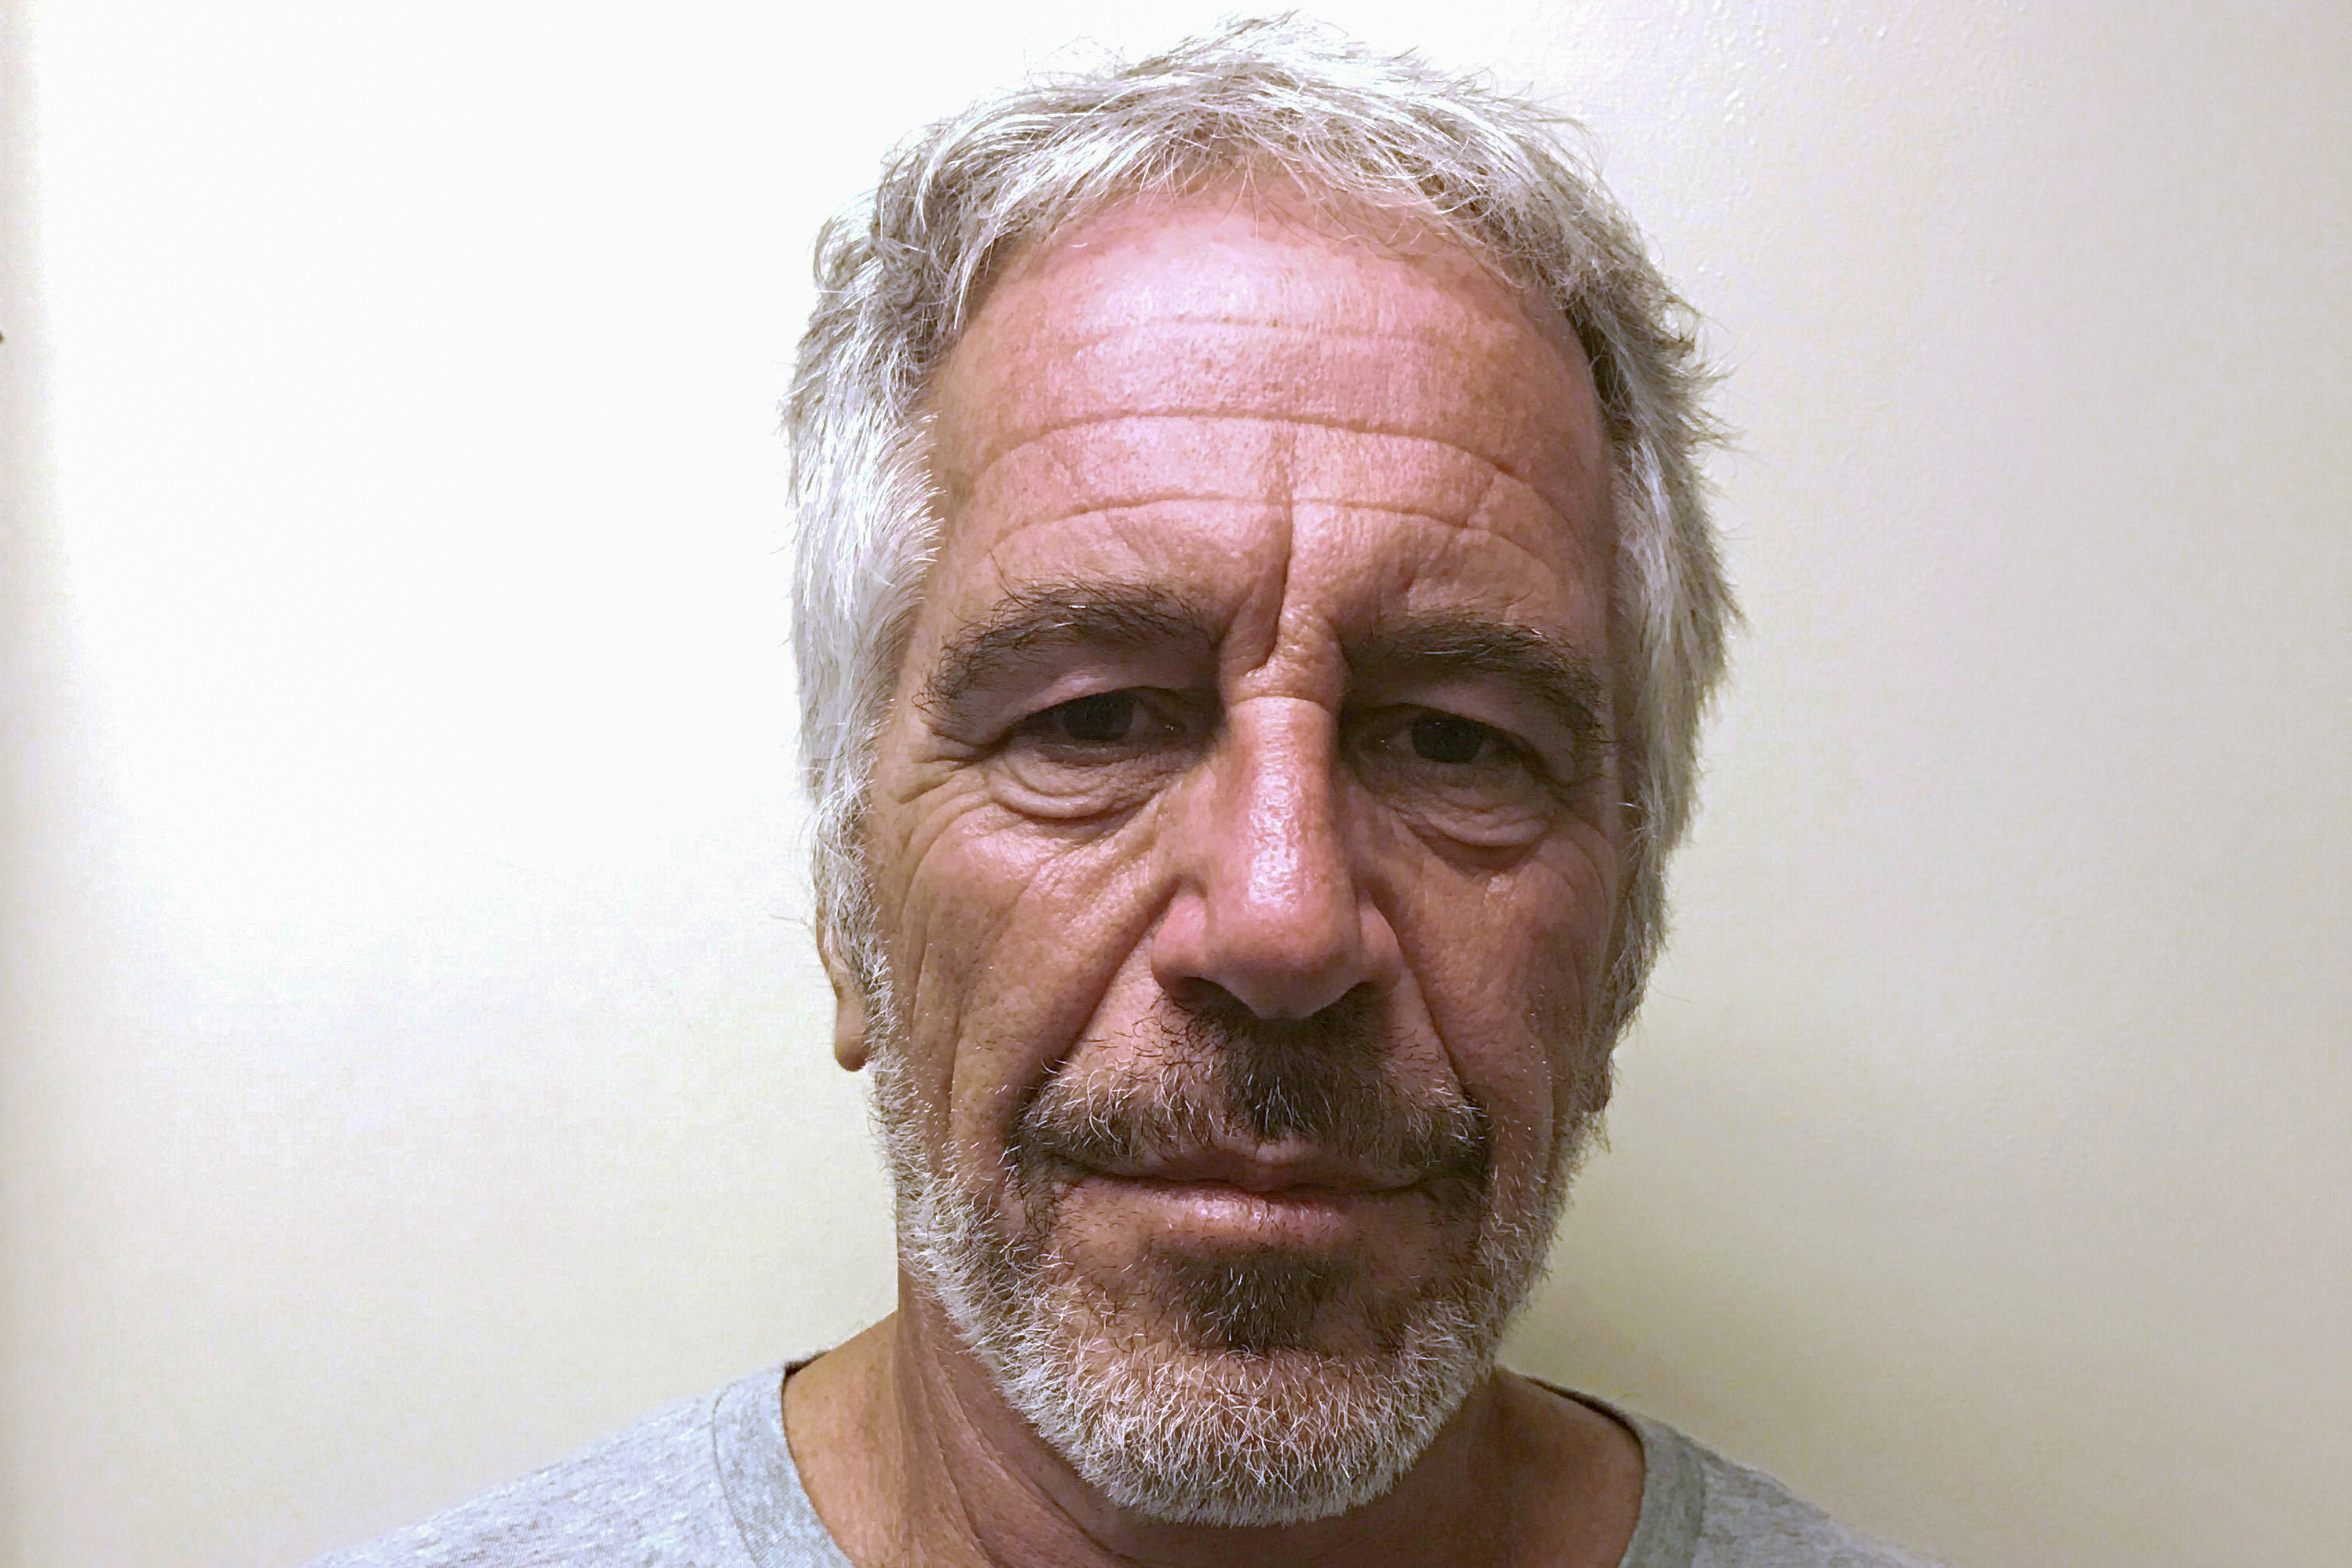 Jeffrey Epstein dead after 'apparent suicide' in New York - The